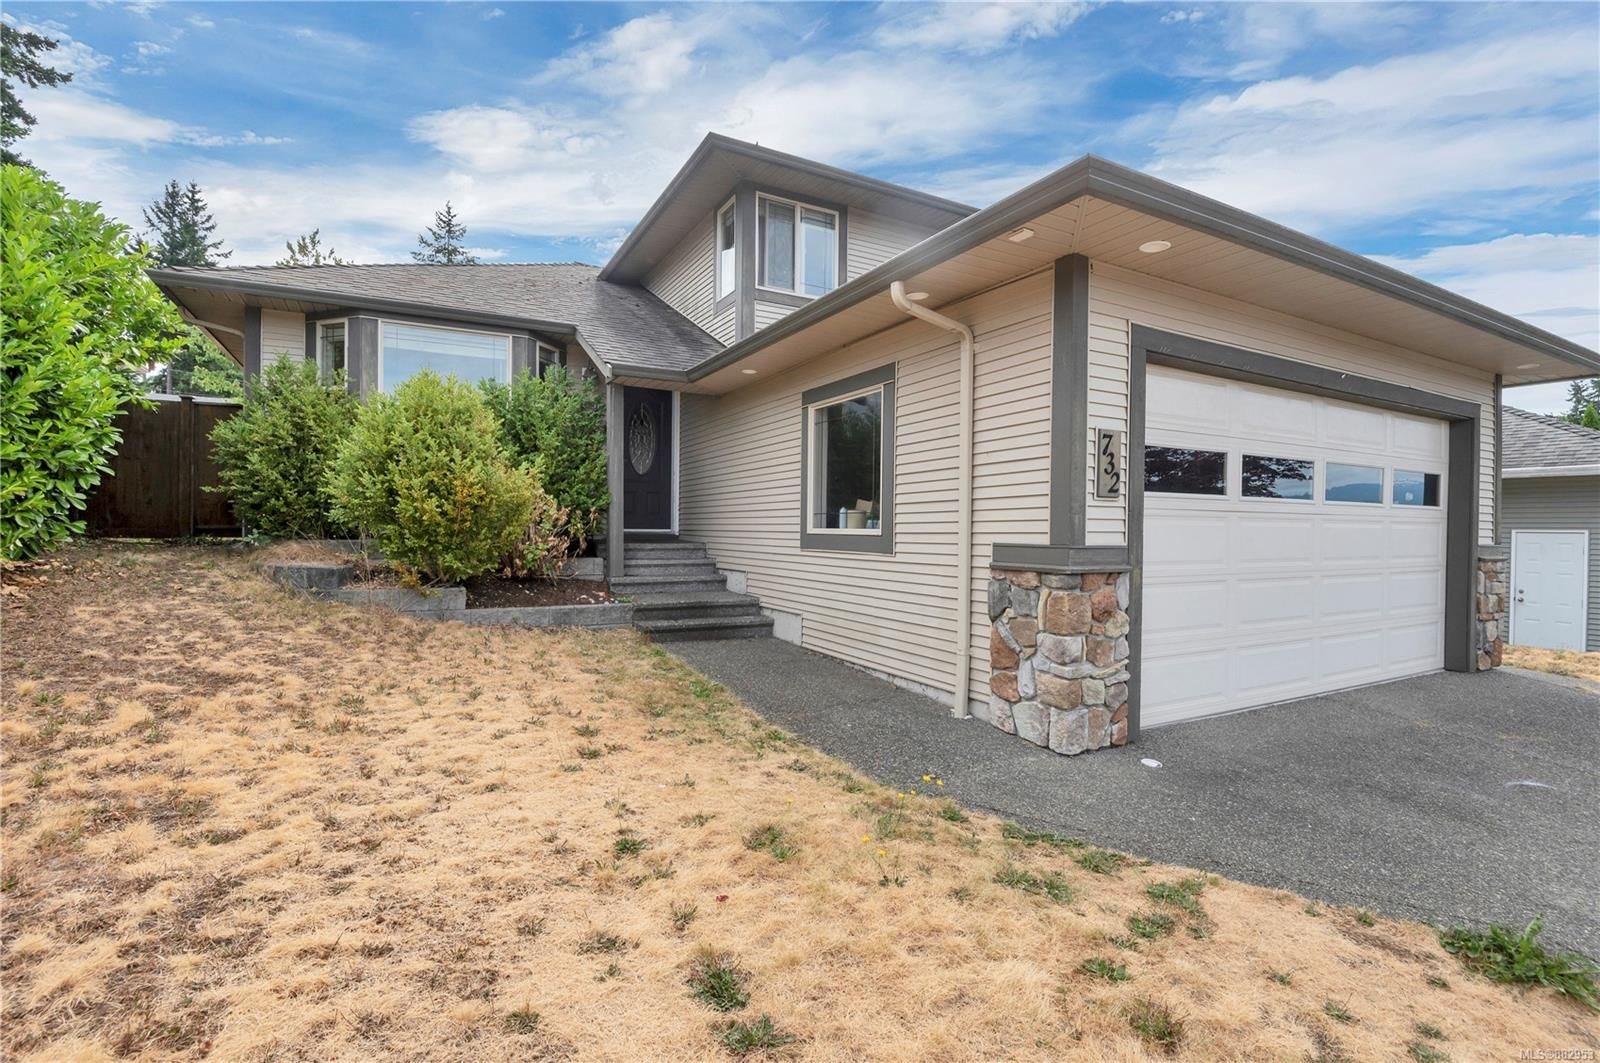 Photo 4: Photos: 732 Oribi Dr in : CR Campbell River Central House for sale (Campbell River)  : MLS®# 882953